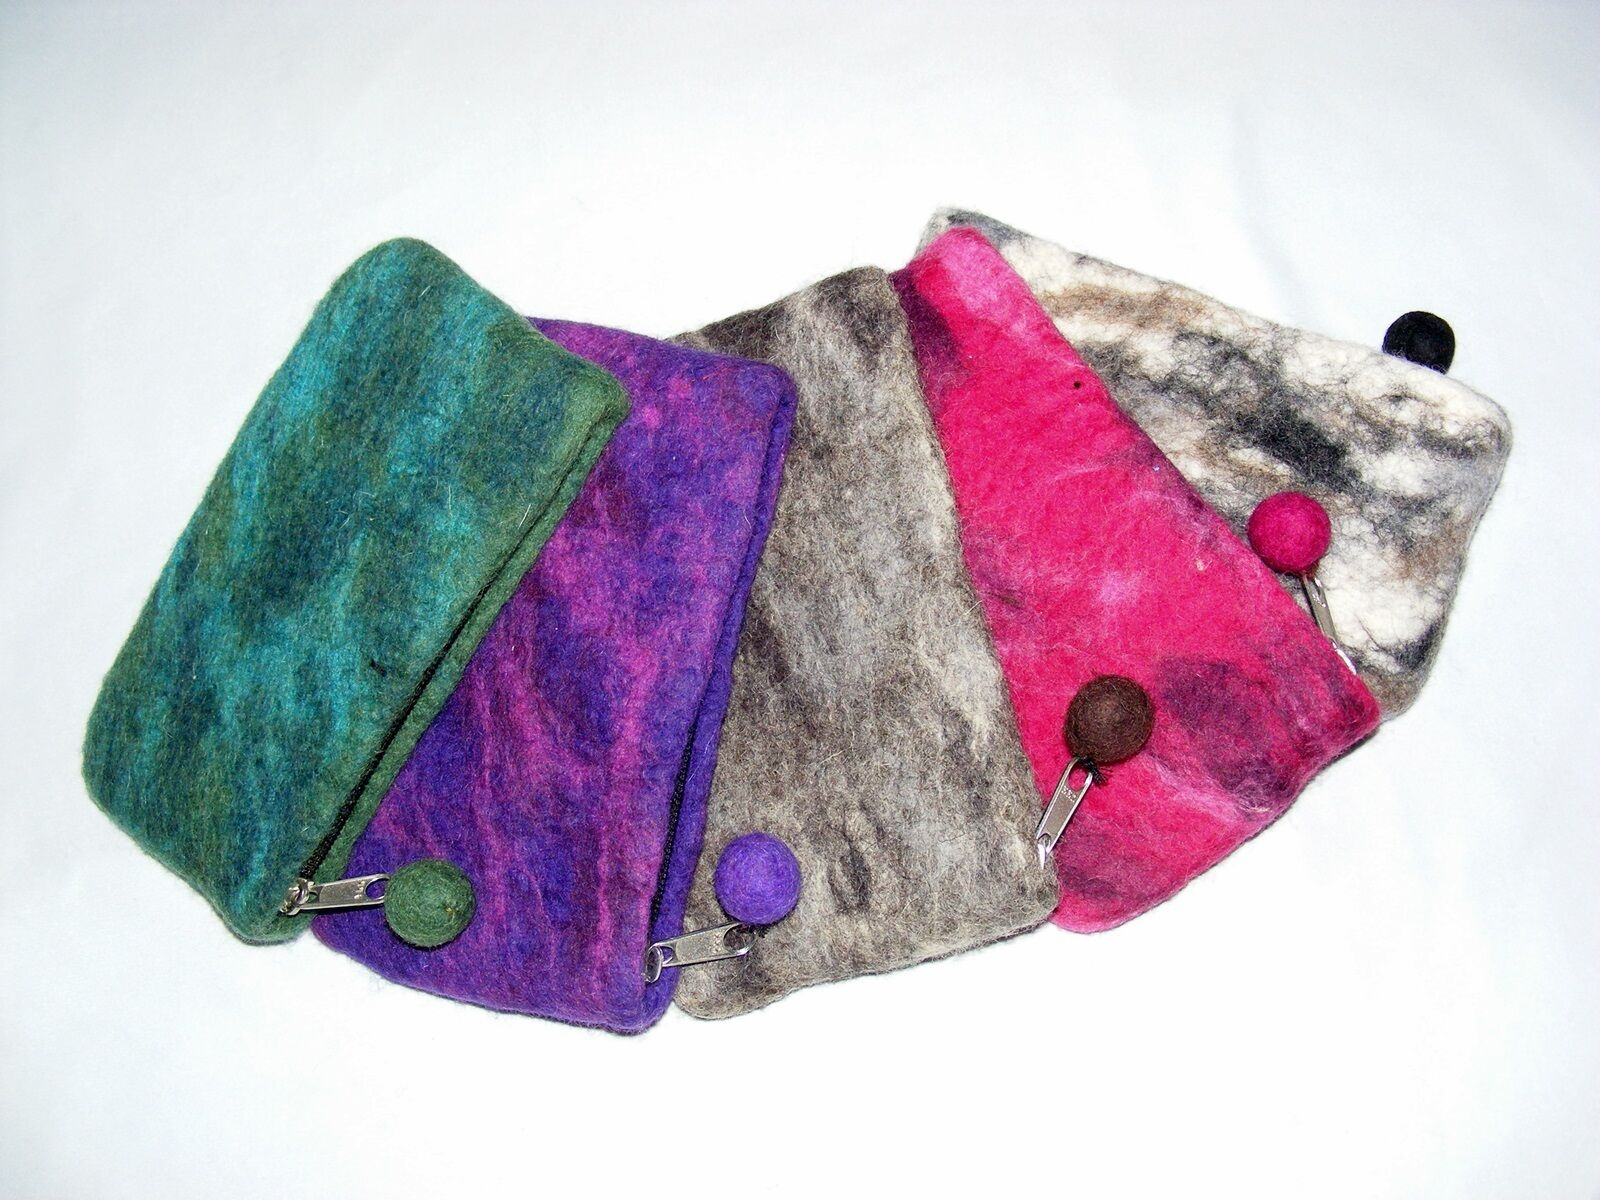 Felt Purse Or Purse From Sheep's Wool Felted 5 Colors Handmade Nepal